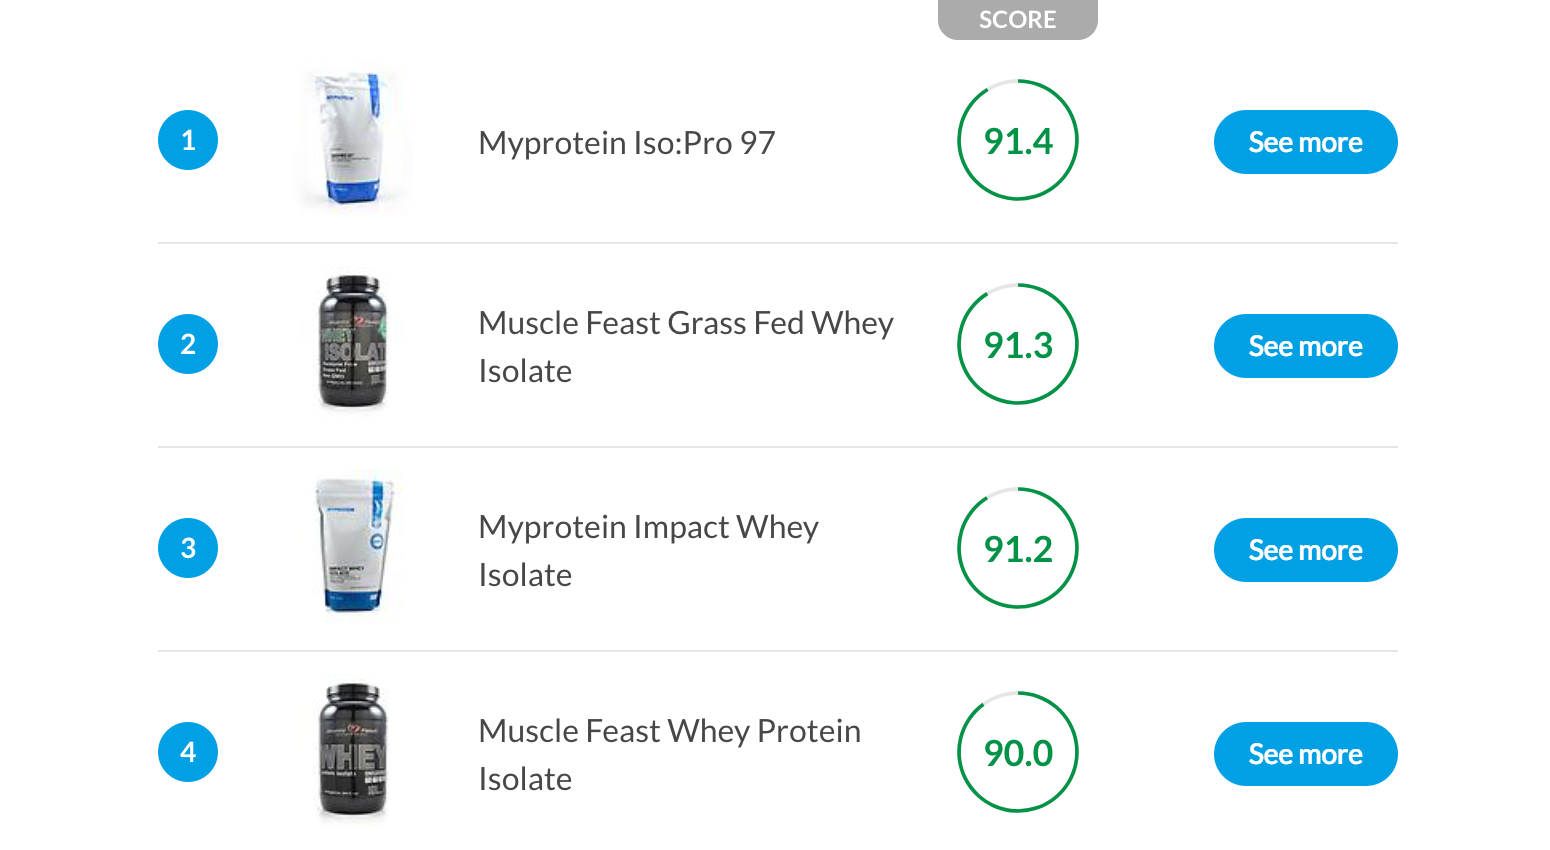 Detailed critical analysis of protein supplements